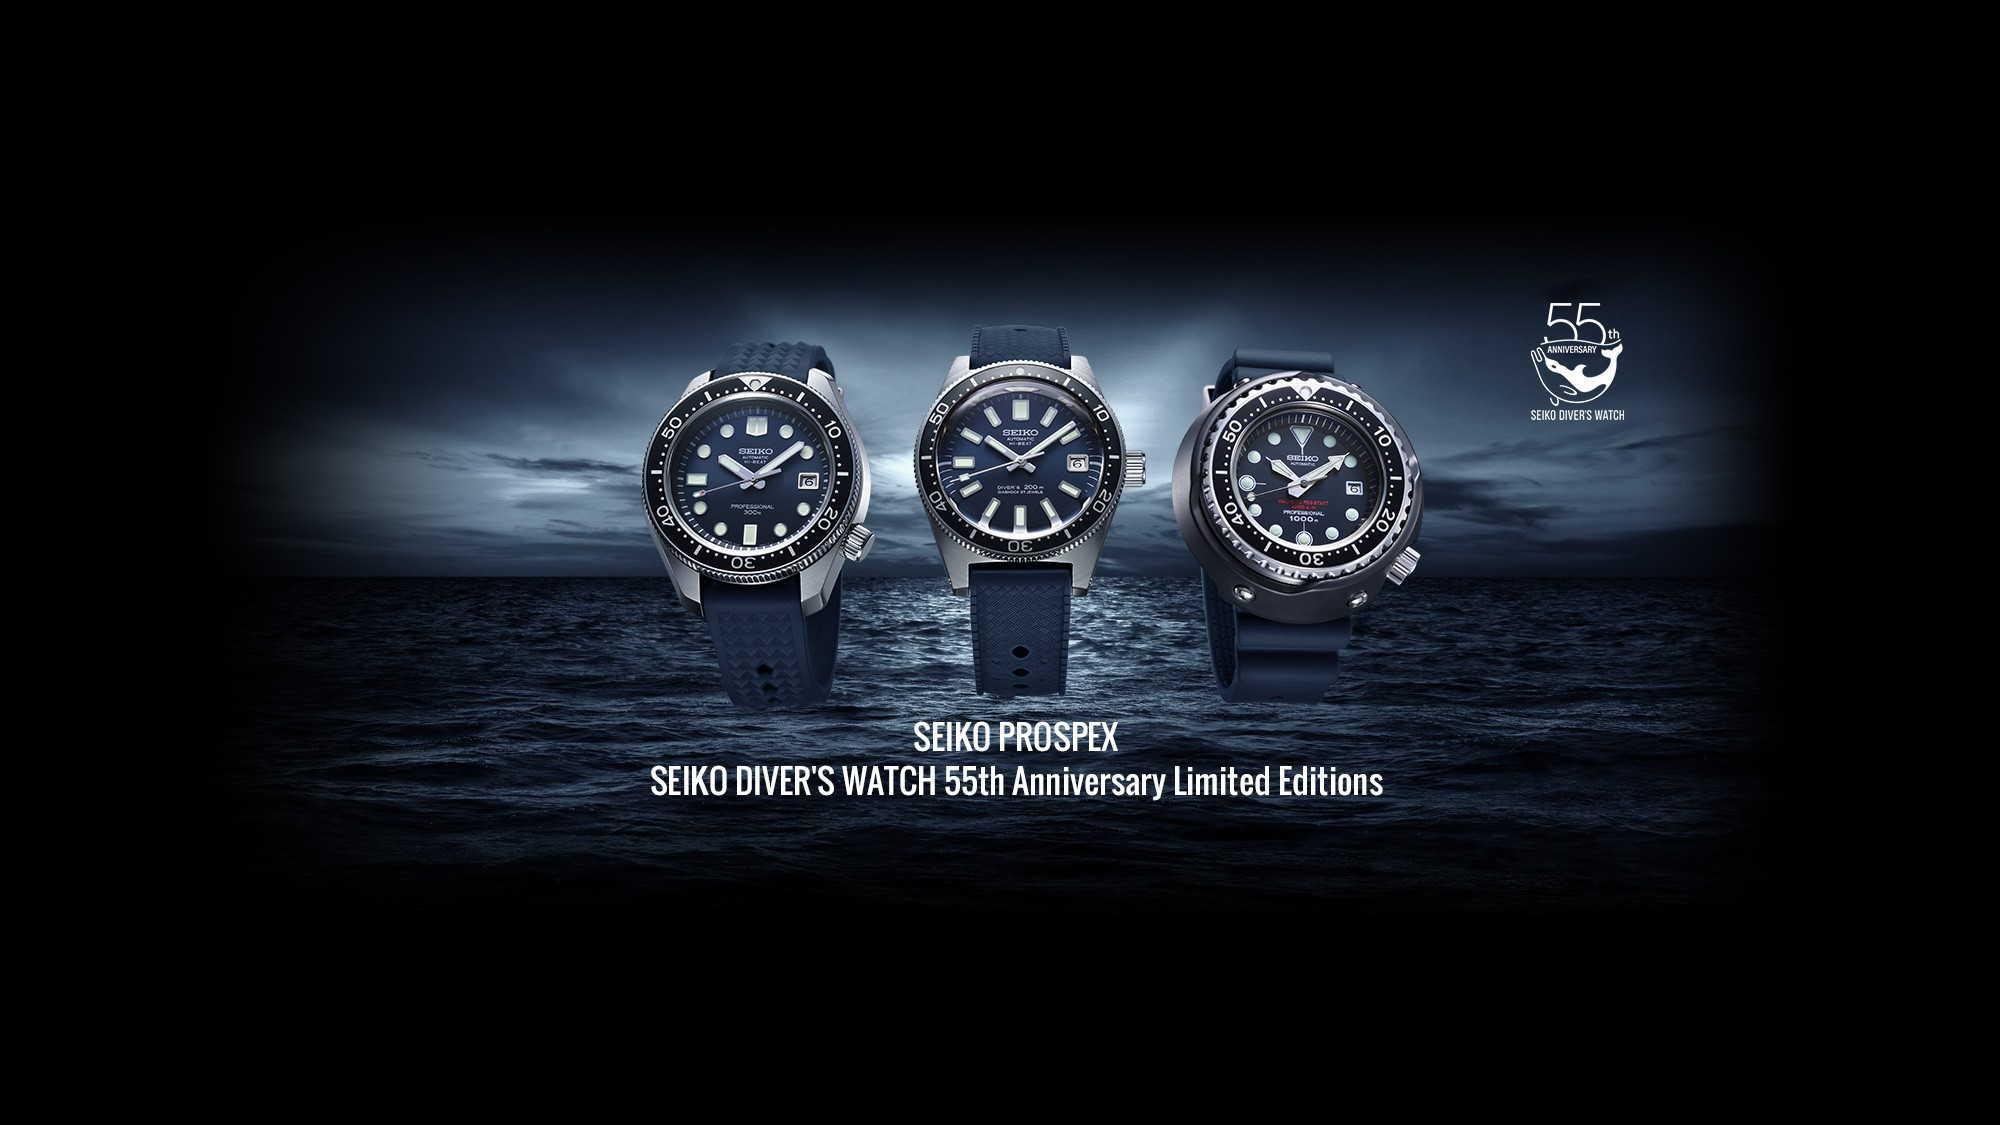 Sei Di Ponte Nossa Se seiko watch corporation